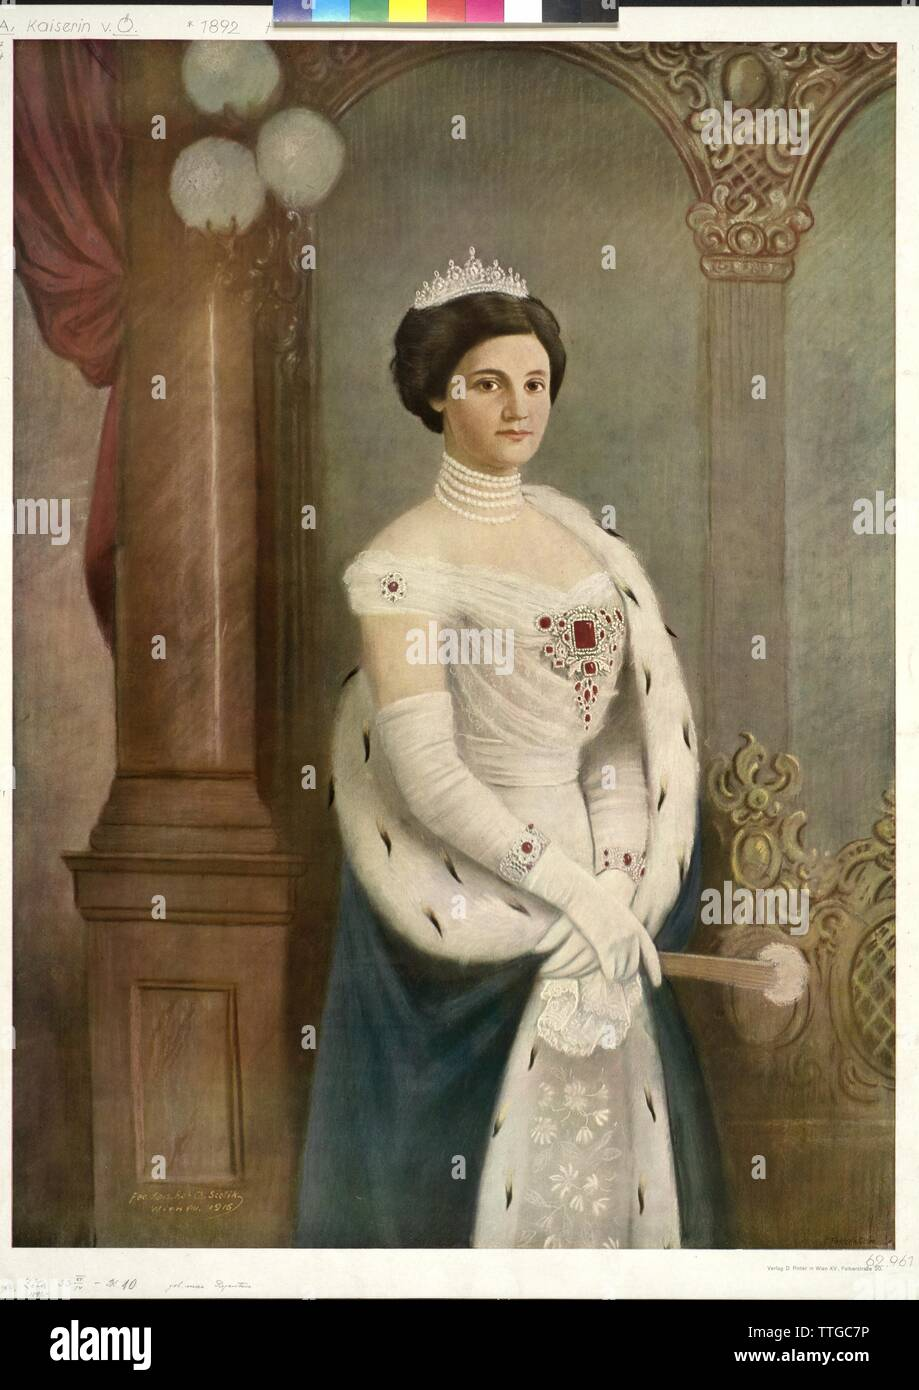 Zita, Empress of Austria, colour printing based on an edited photograph by Charles Scolik, Additional-Rights-Clearance-Info-Not-Available - Stock Image